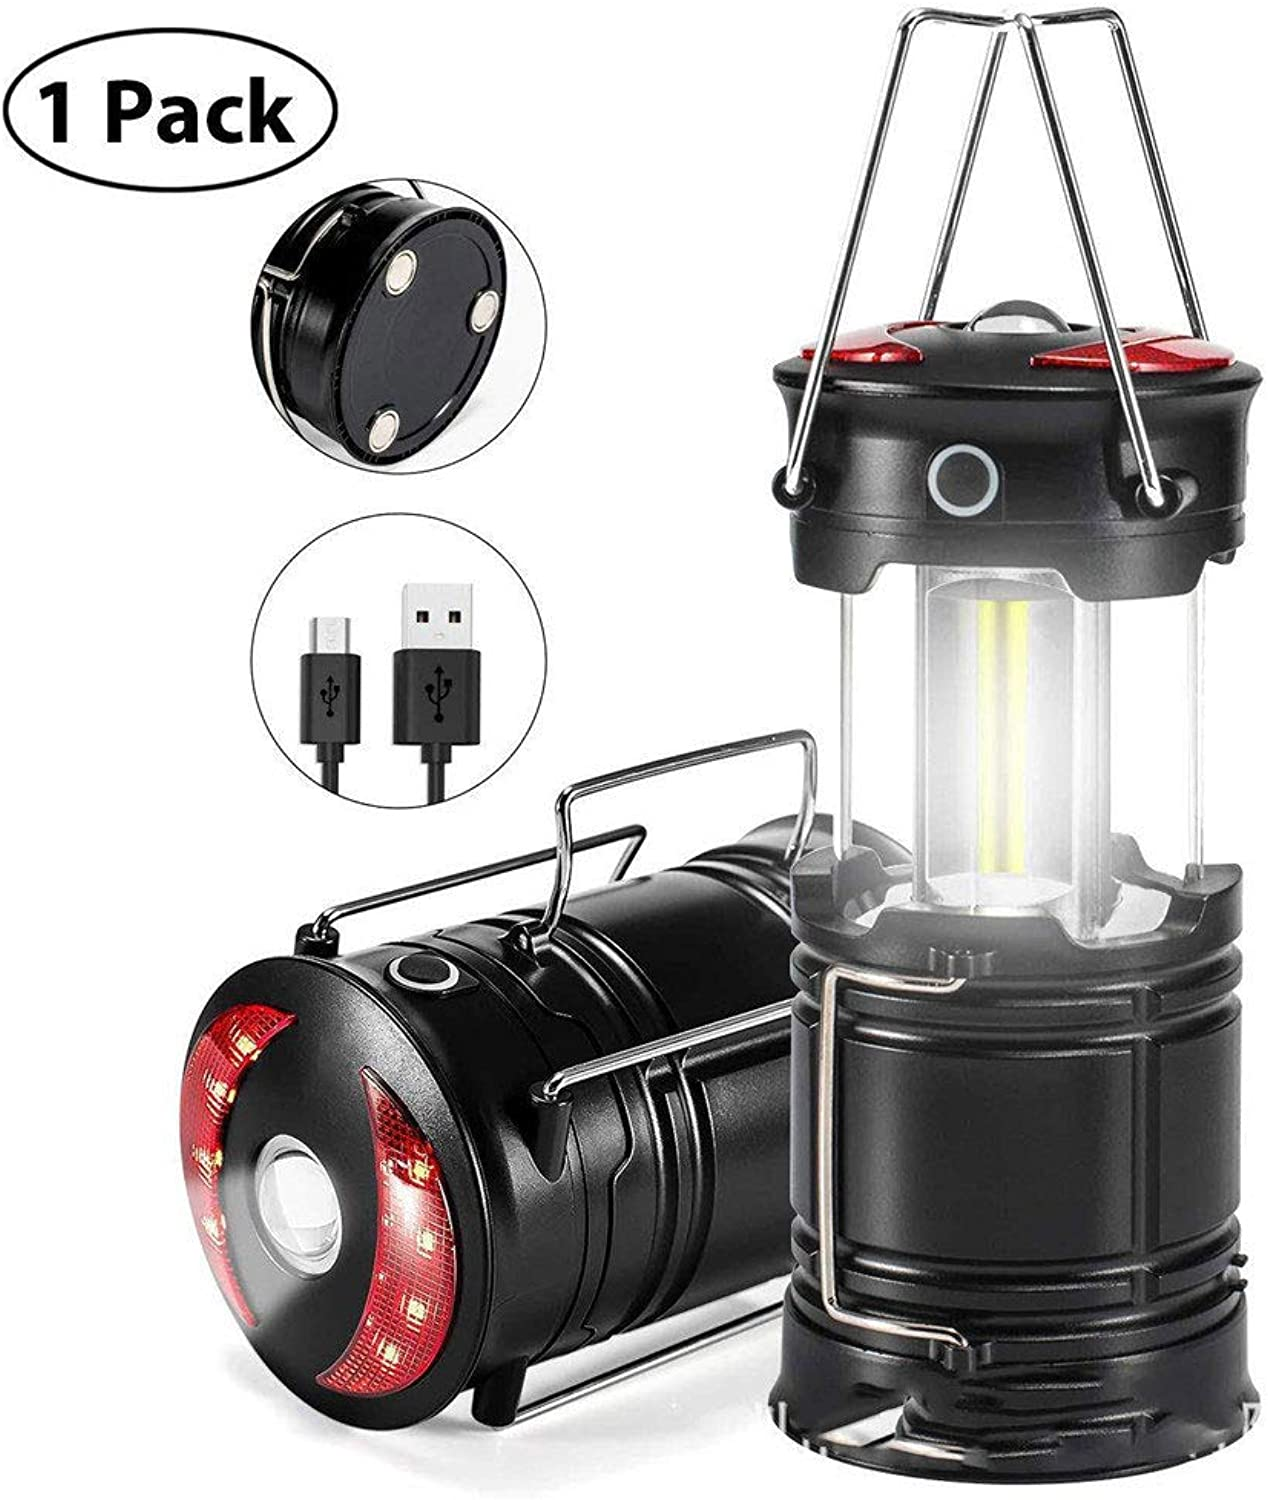 LED Portable Camping Lantern Collapsible Water Resistant Outdoor Light for Emergency, Hiking, Fishing, Power Cuts and More, Black